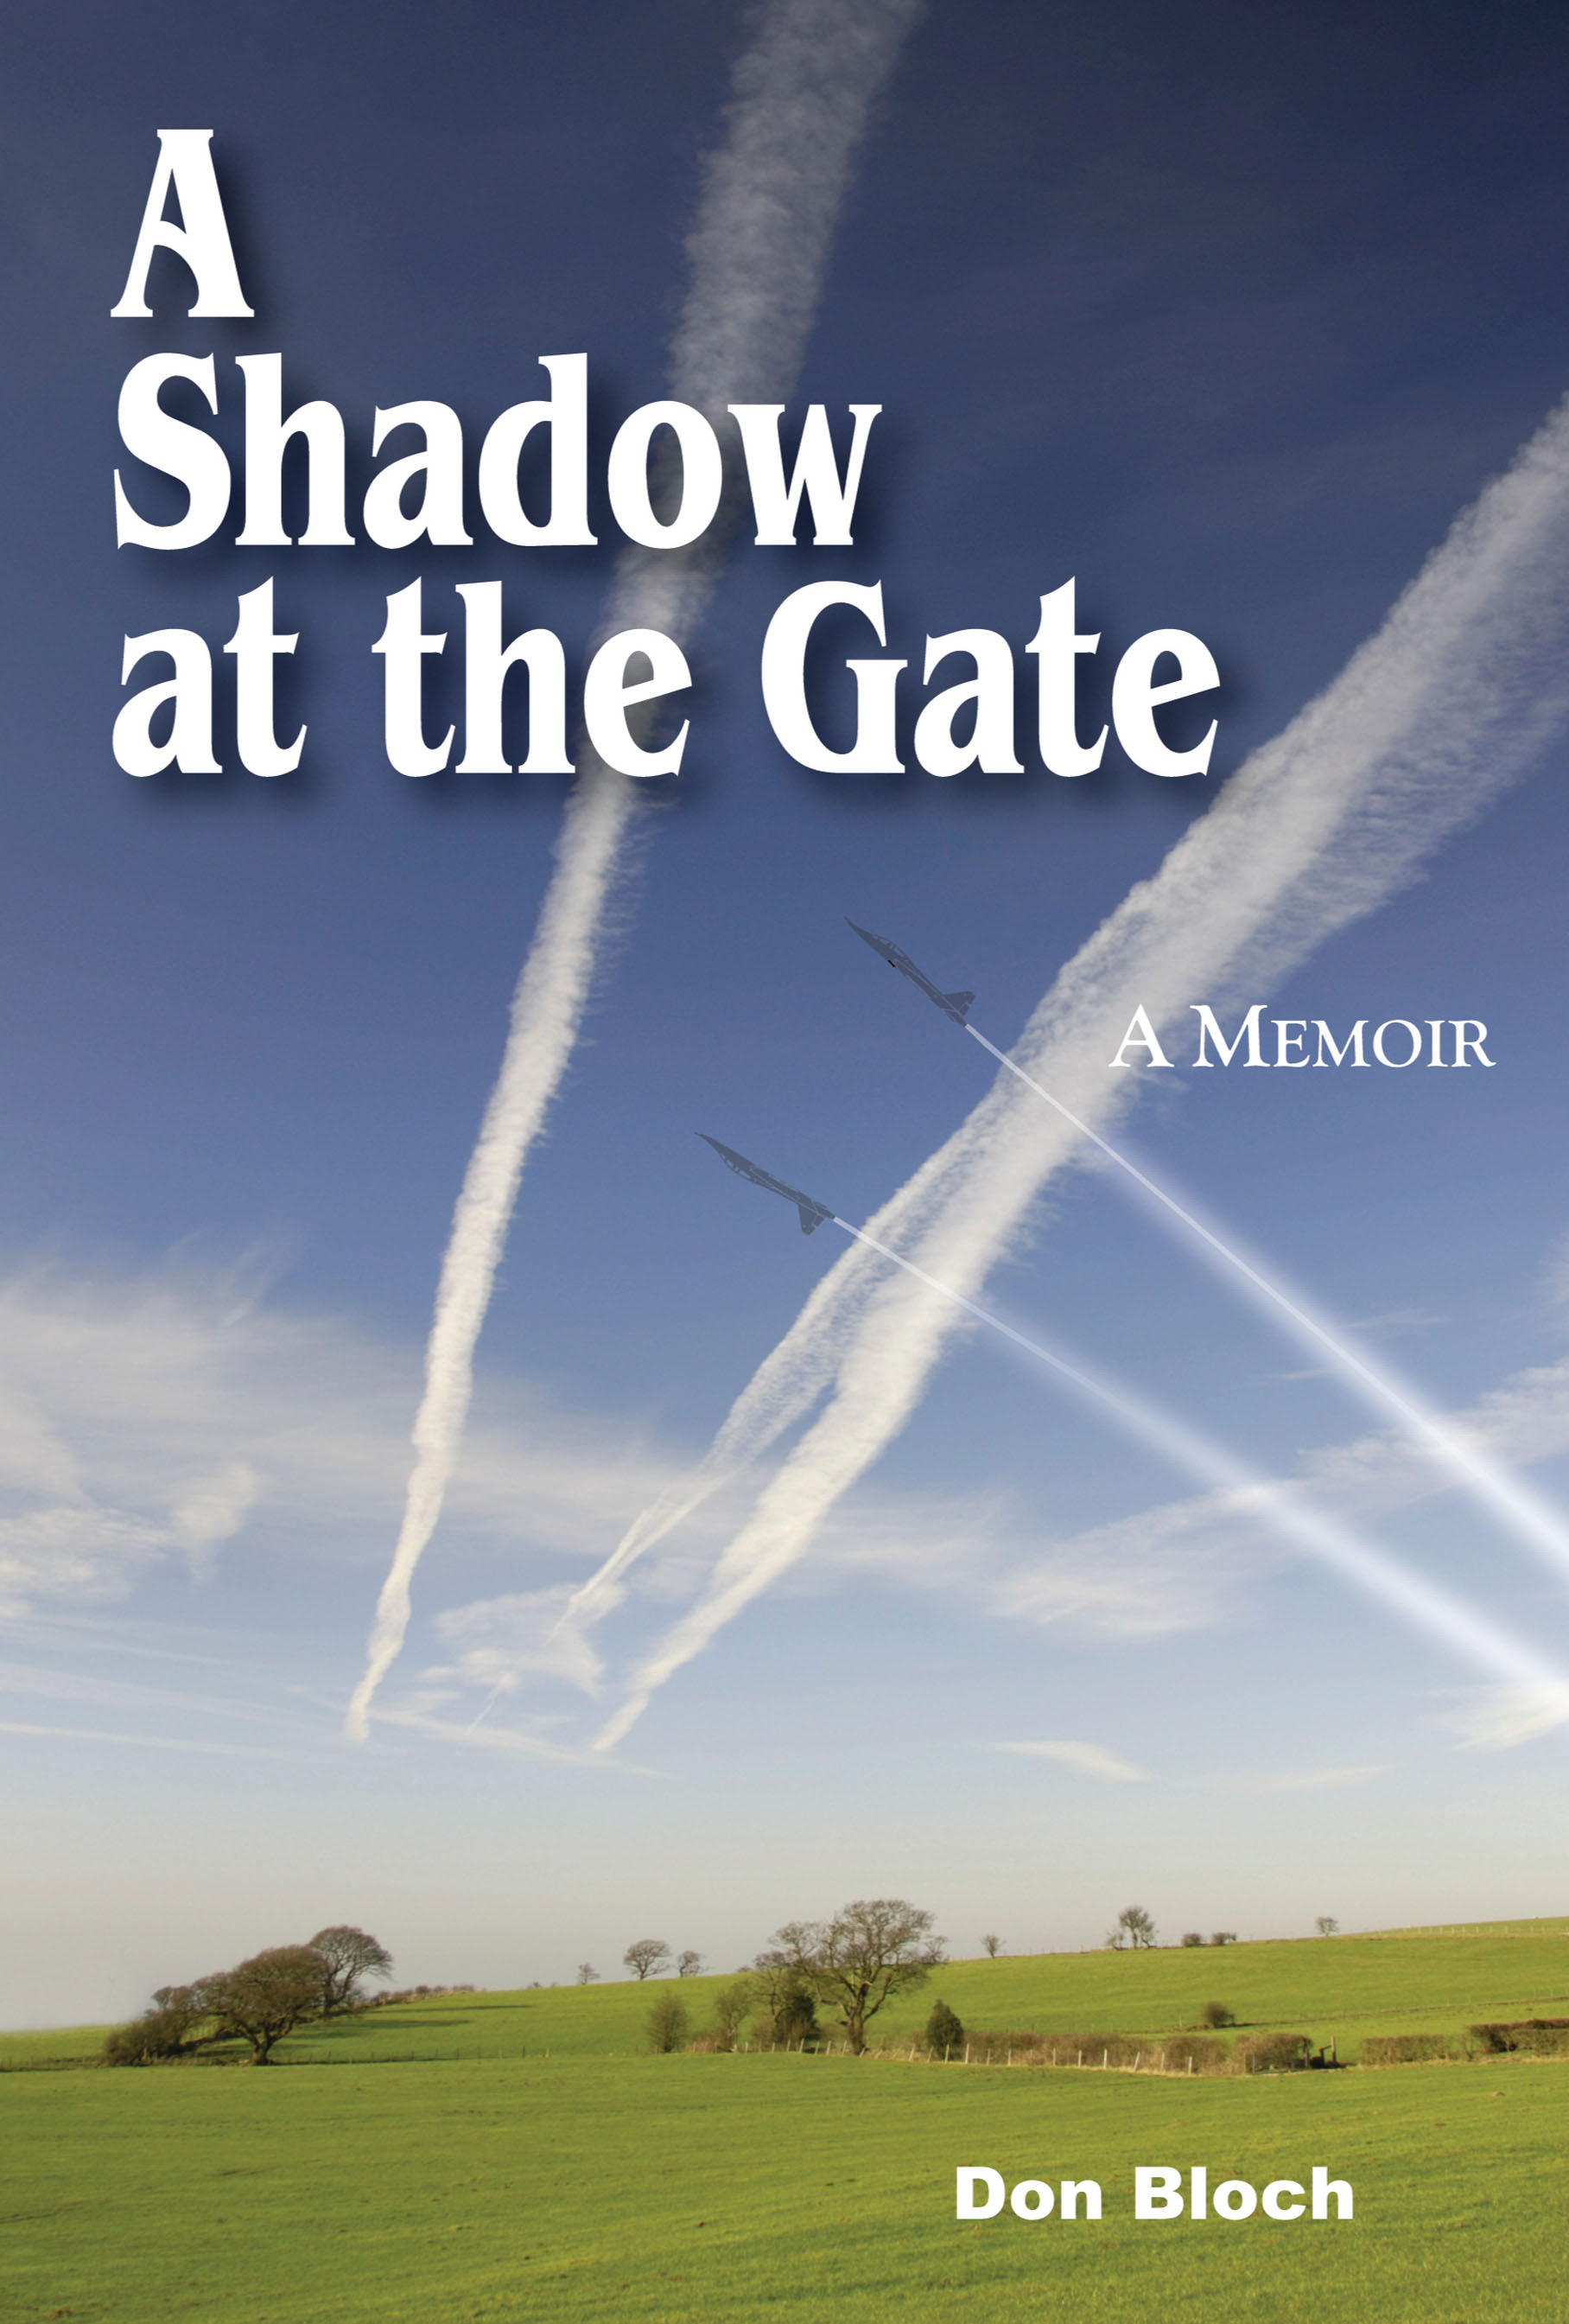 A Shadow at the Gate